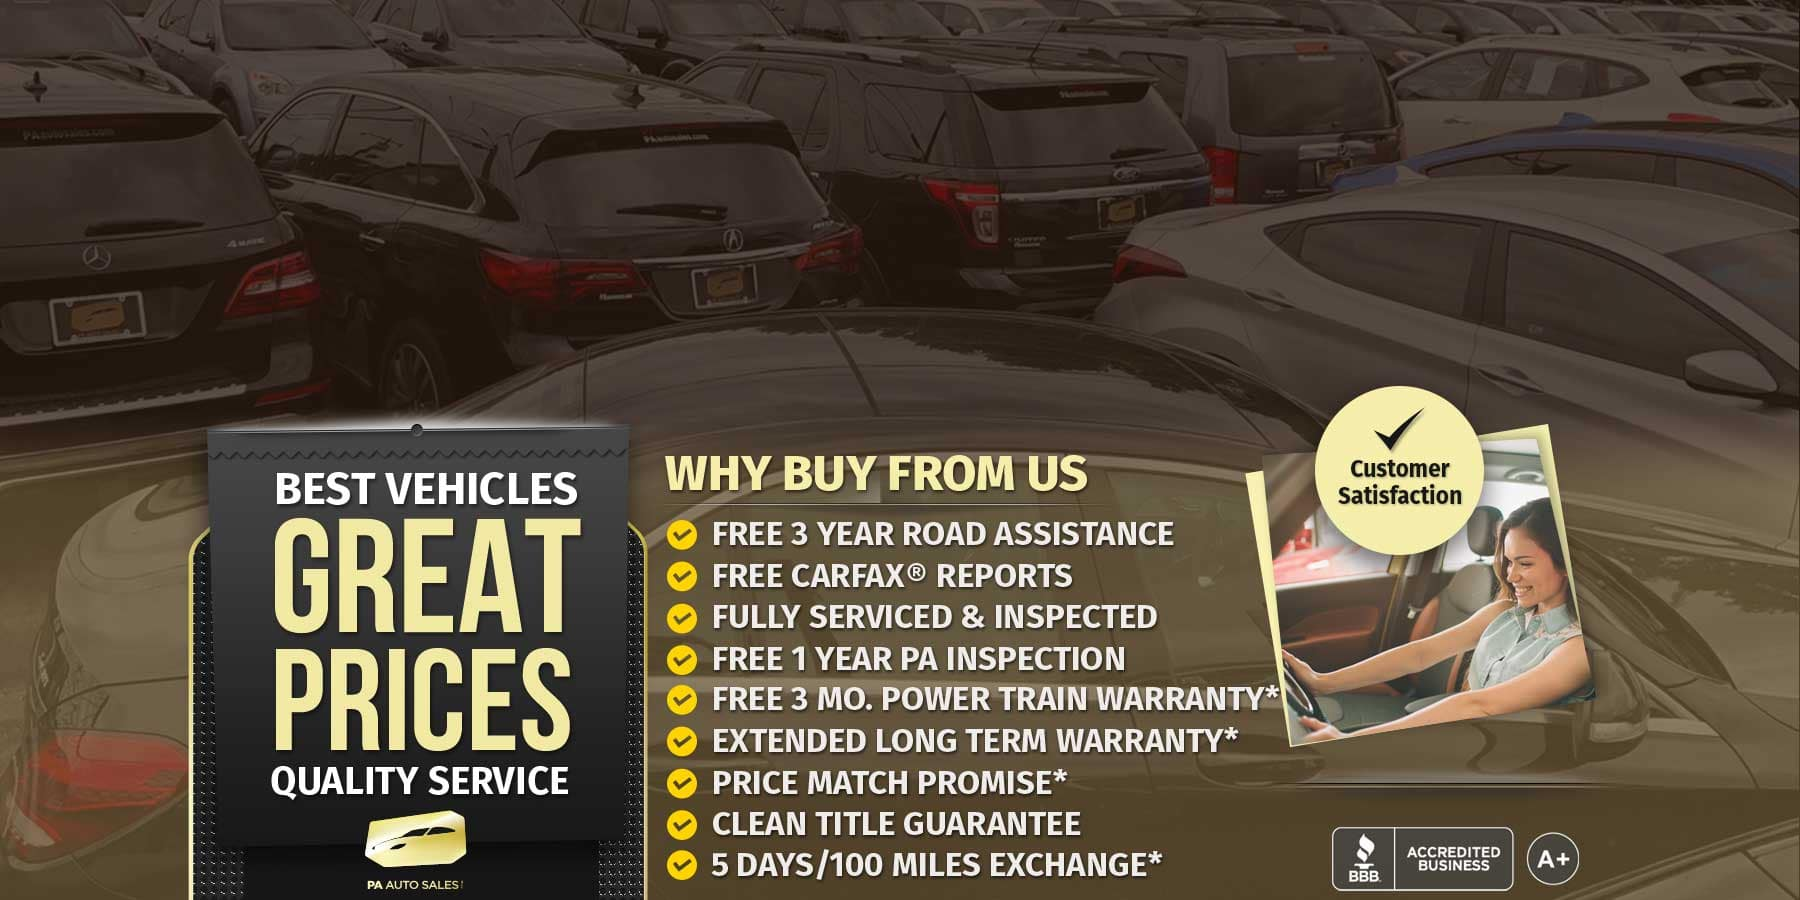 Why Buy From Us - PA Auto Sales